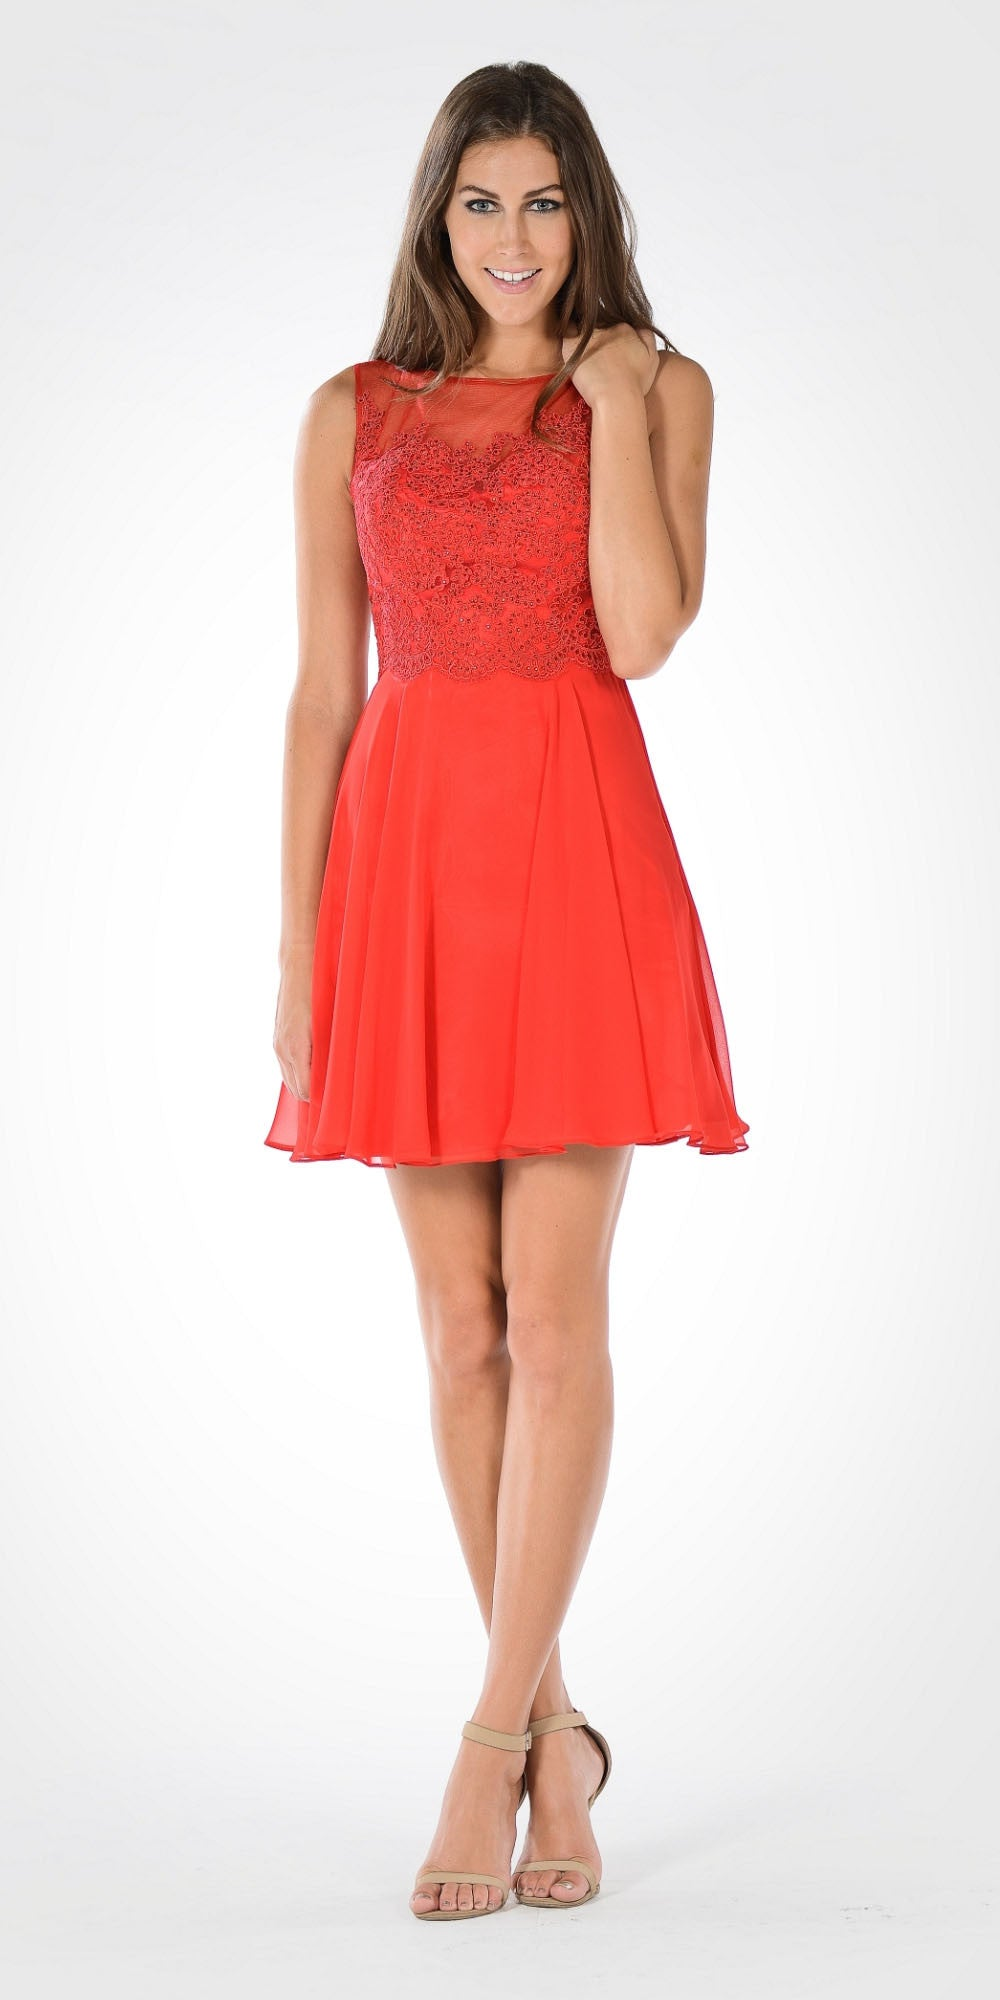 Bateau Neck Embellished Bodice Chiffon Skirt Short Party Dress Red